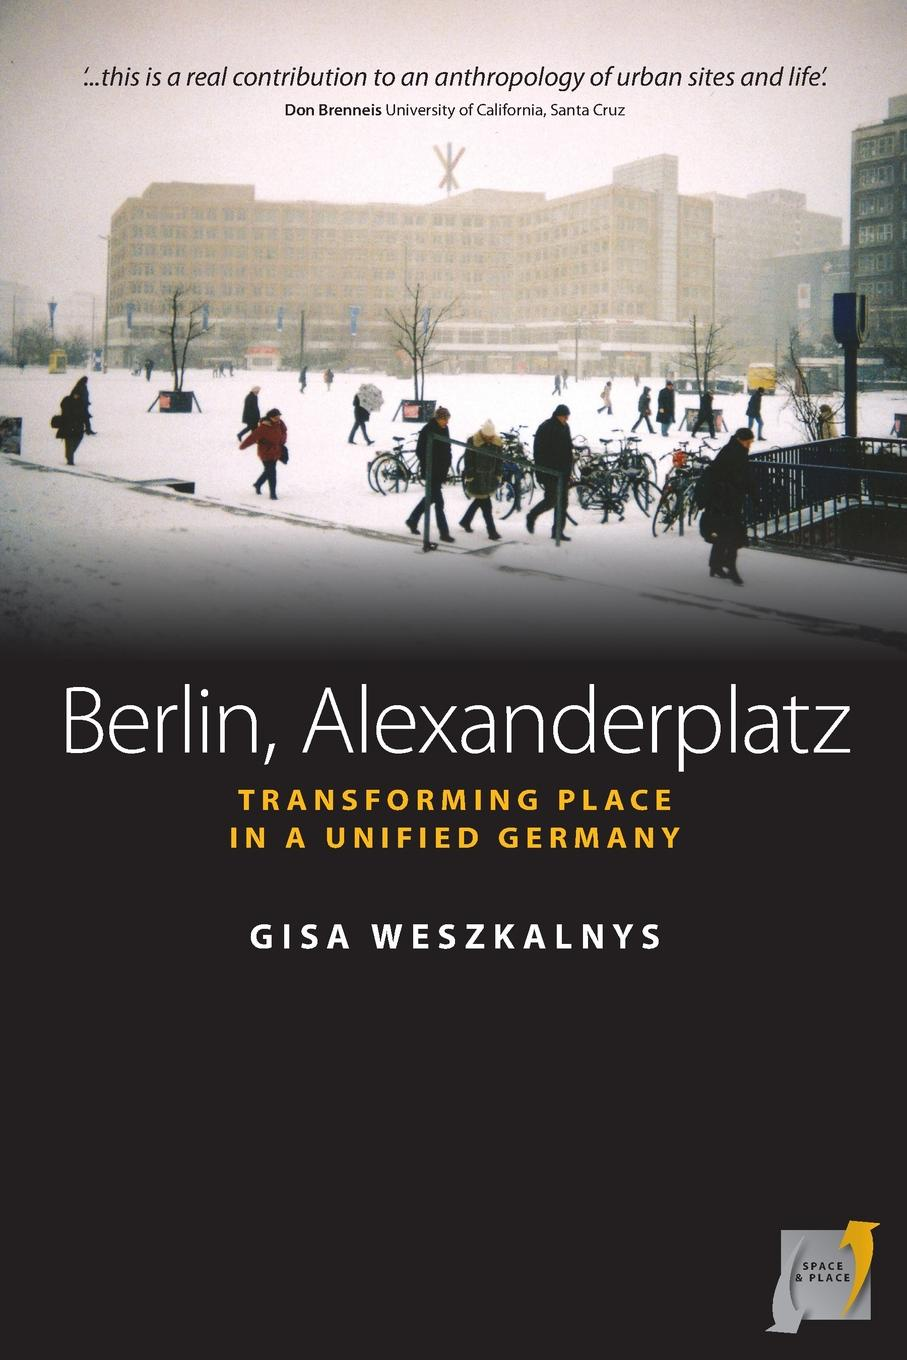 Gisa Weszkalnys. Berlin, Alexanderplatz. Transforming Place in a Unified Germany